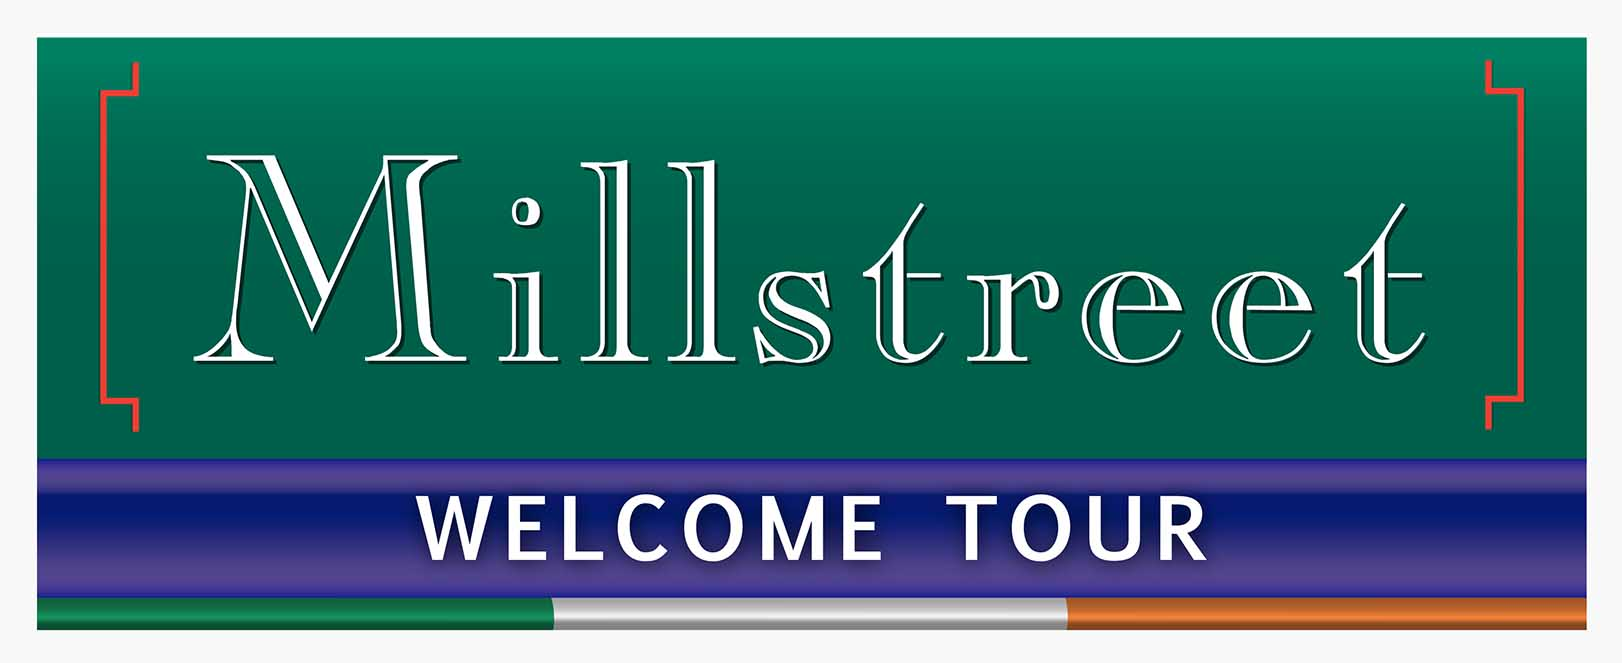 Millstreet_Welcome Tour 2020